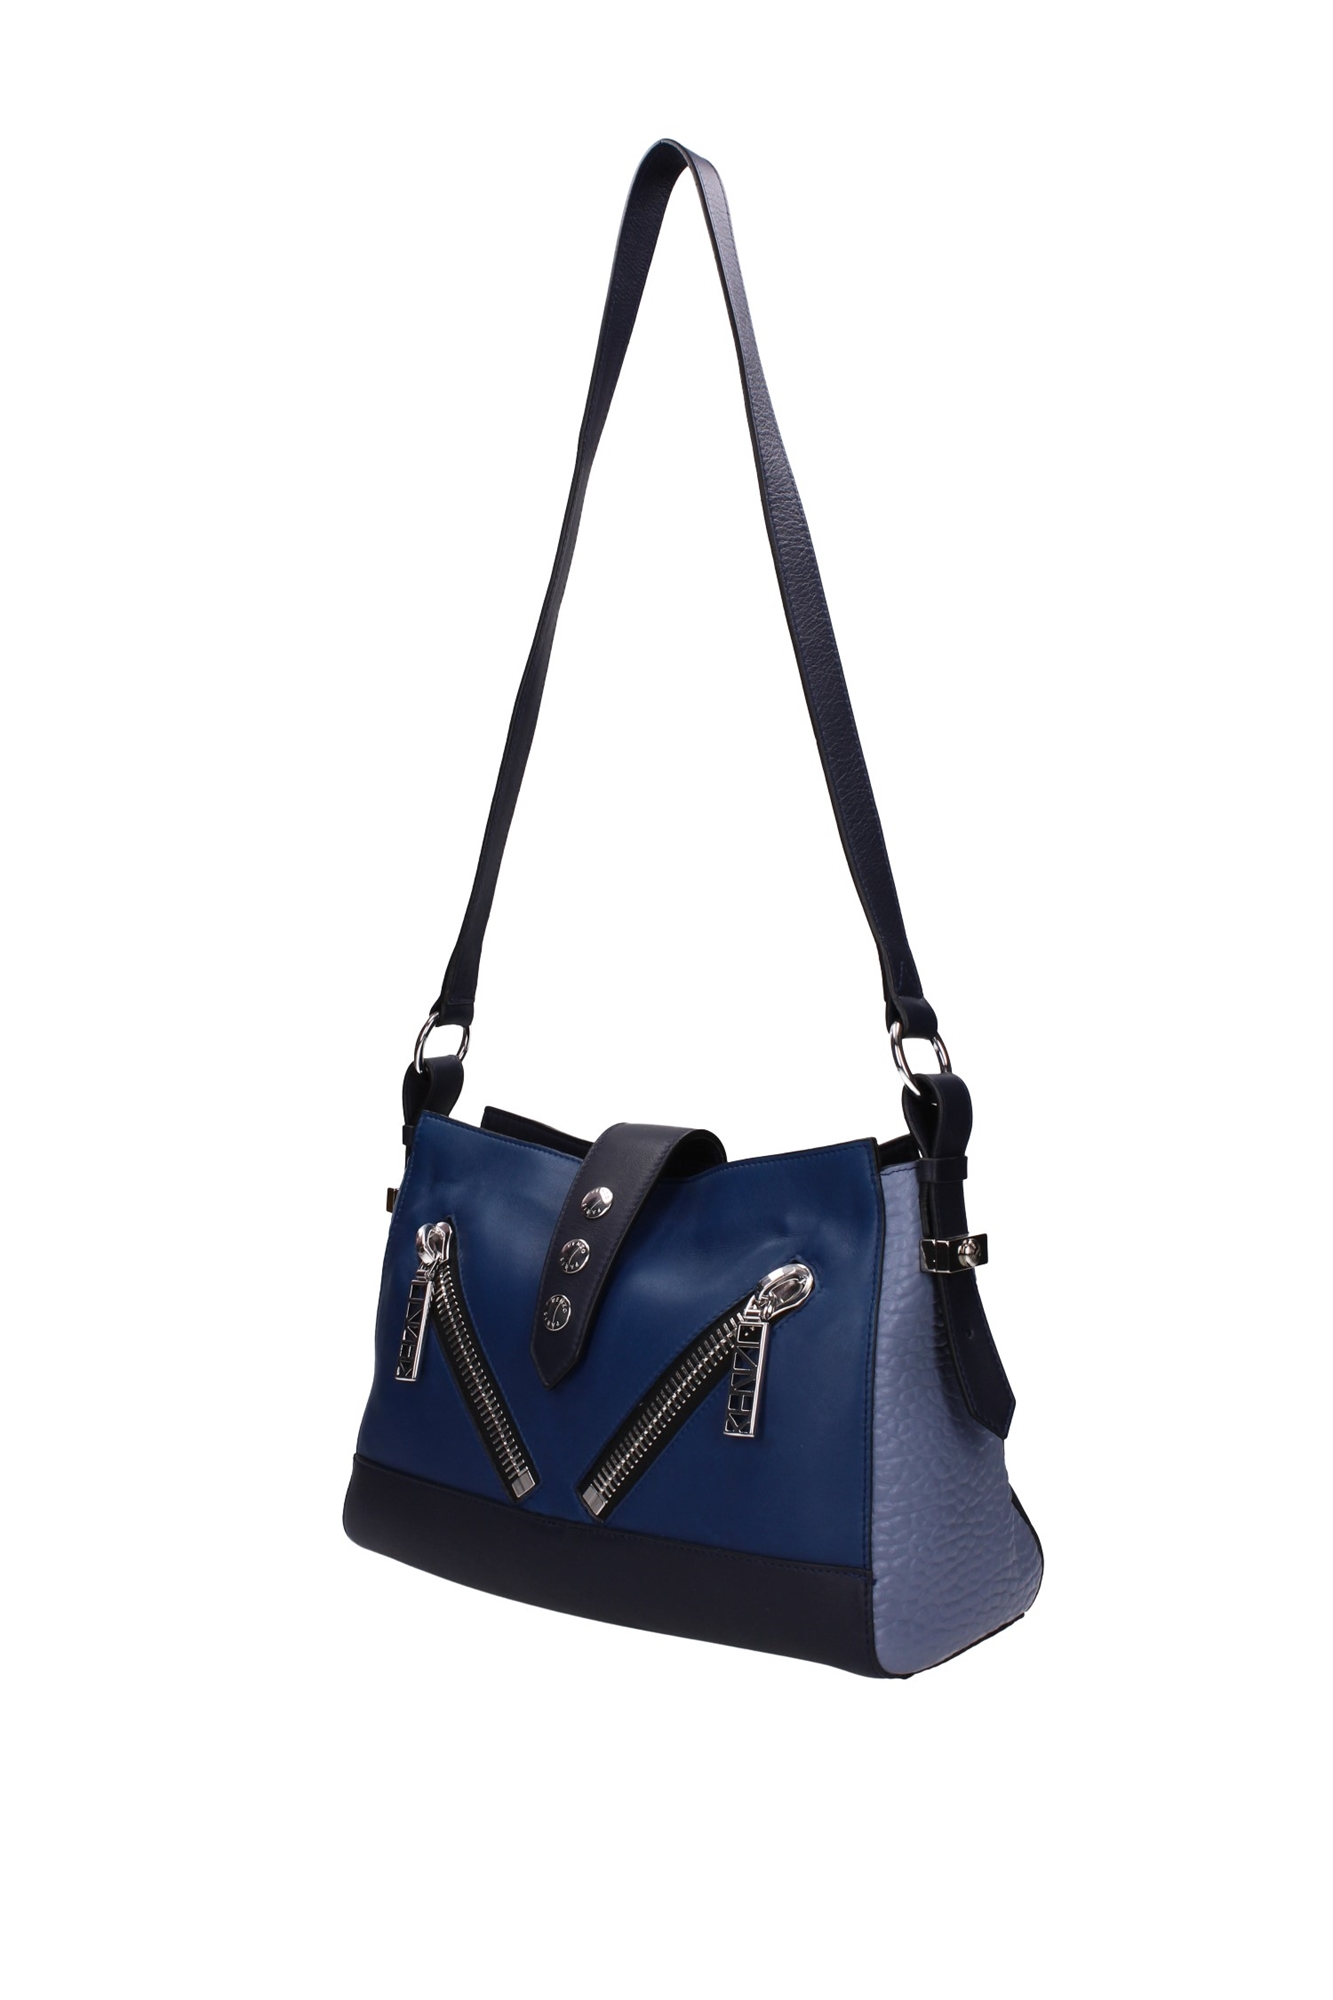 Lastest Home Original Women Hand Bags Ladida Blue Handbag